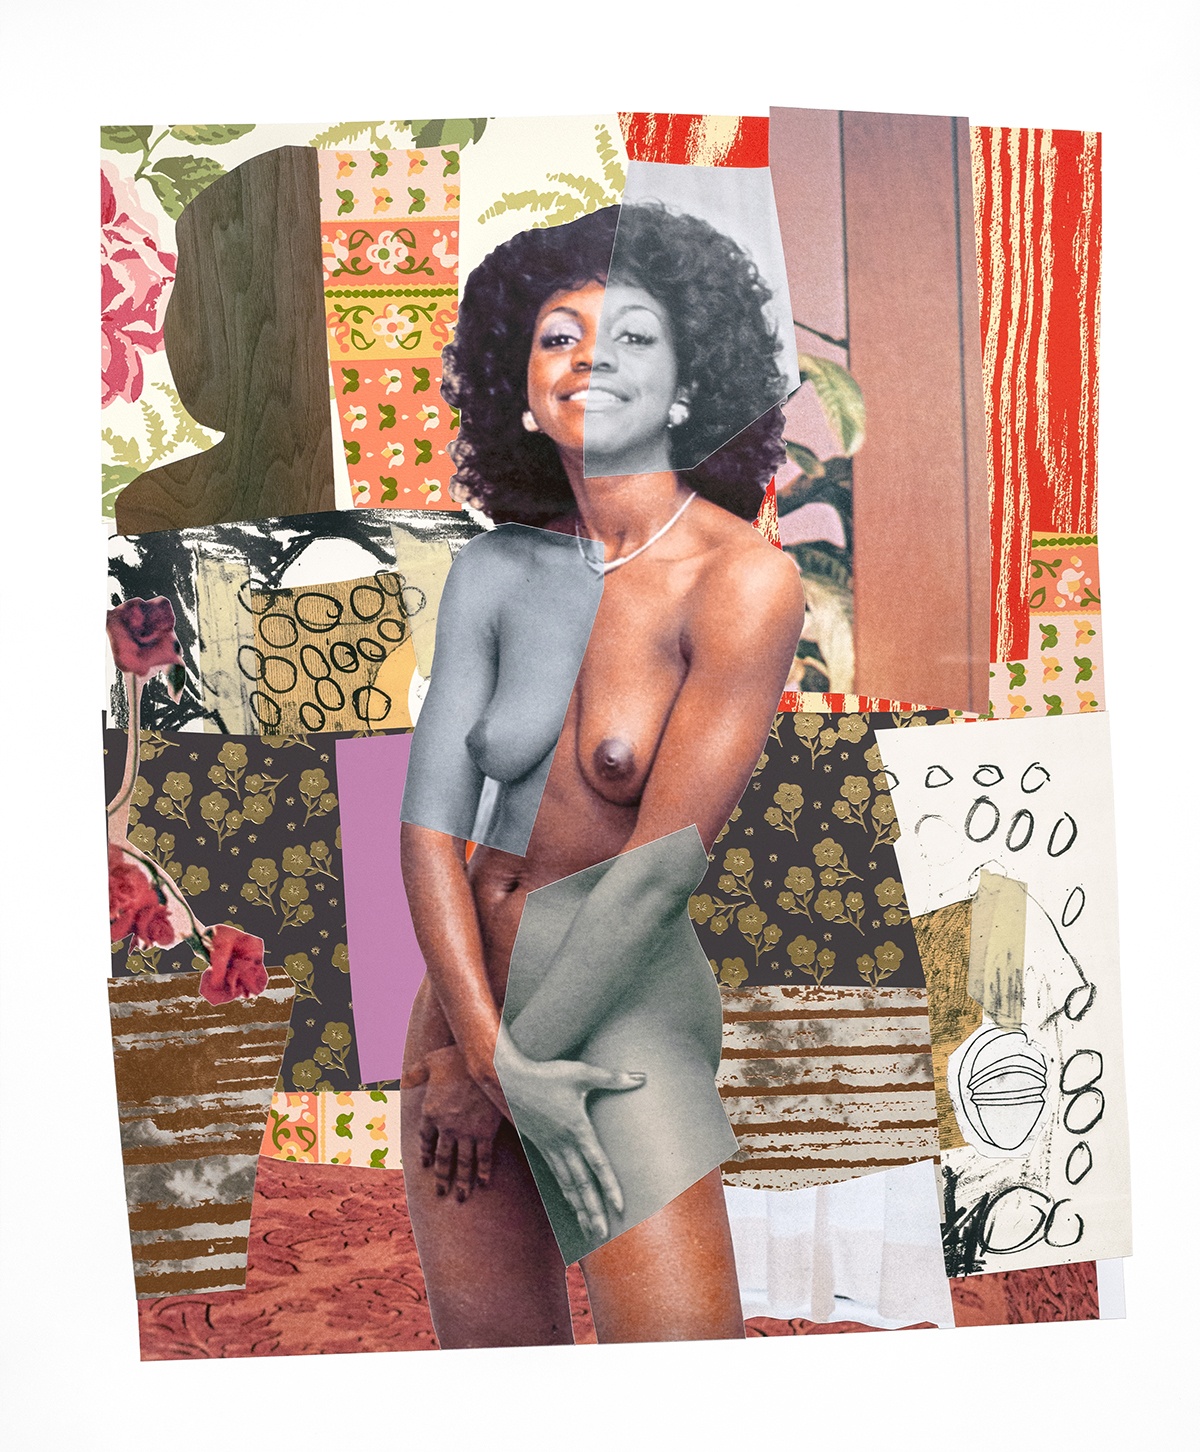 July 1977, Mickalene Thomas. 2019 Relief, screen print, intaglio, wood veneer, archival inkjet, copper and gold foil stamping, chine collé, collage 41 x 34 inches Edition of 25